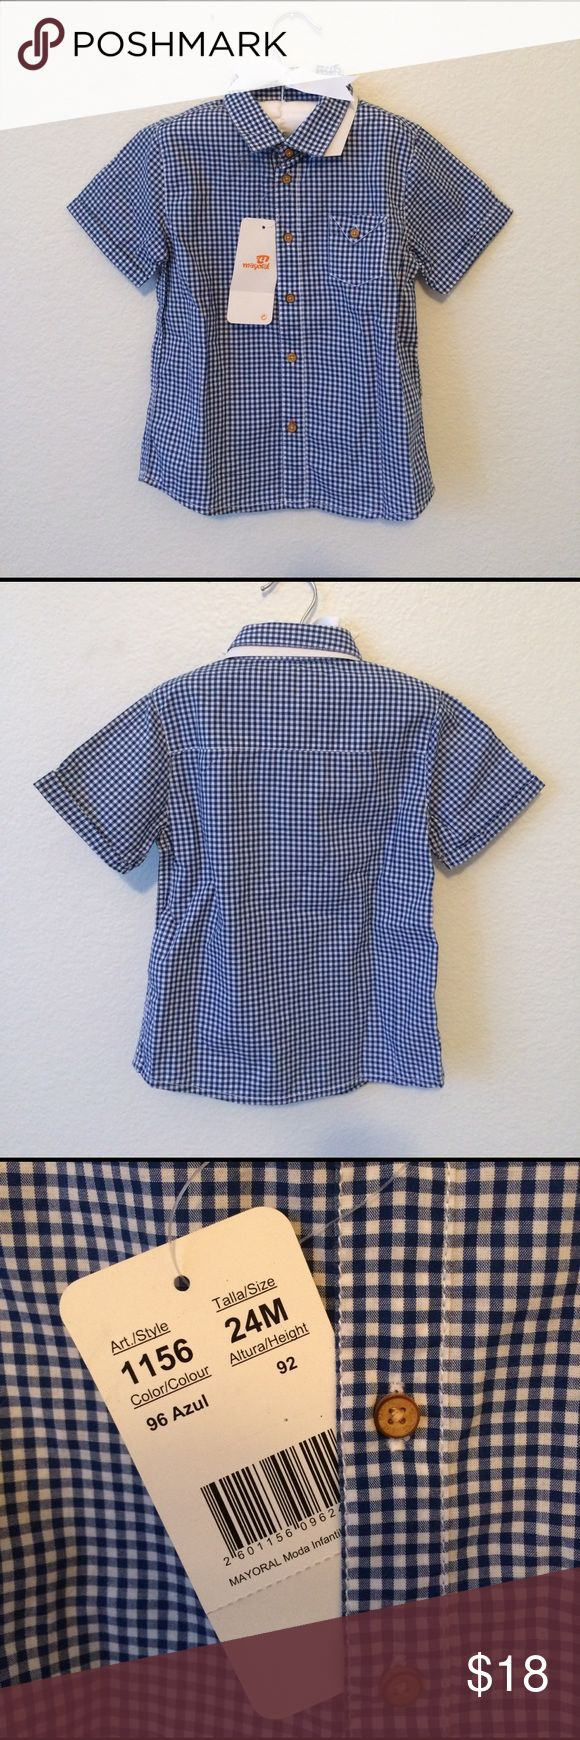 NWT Mayoral short sleeve baby boys button down Mayoral baby boys button down shirt. Blue and white plaid. Mayoral Shirts & Tops Button Down Shirts